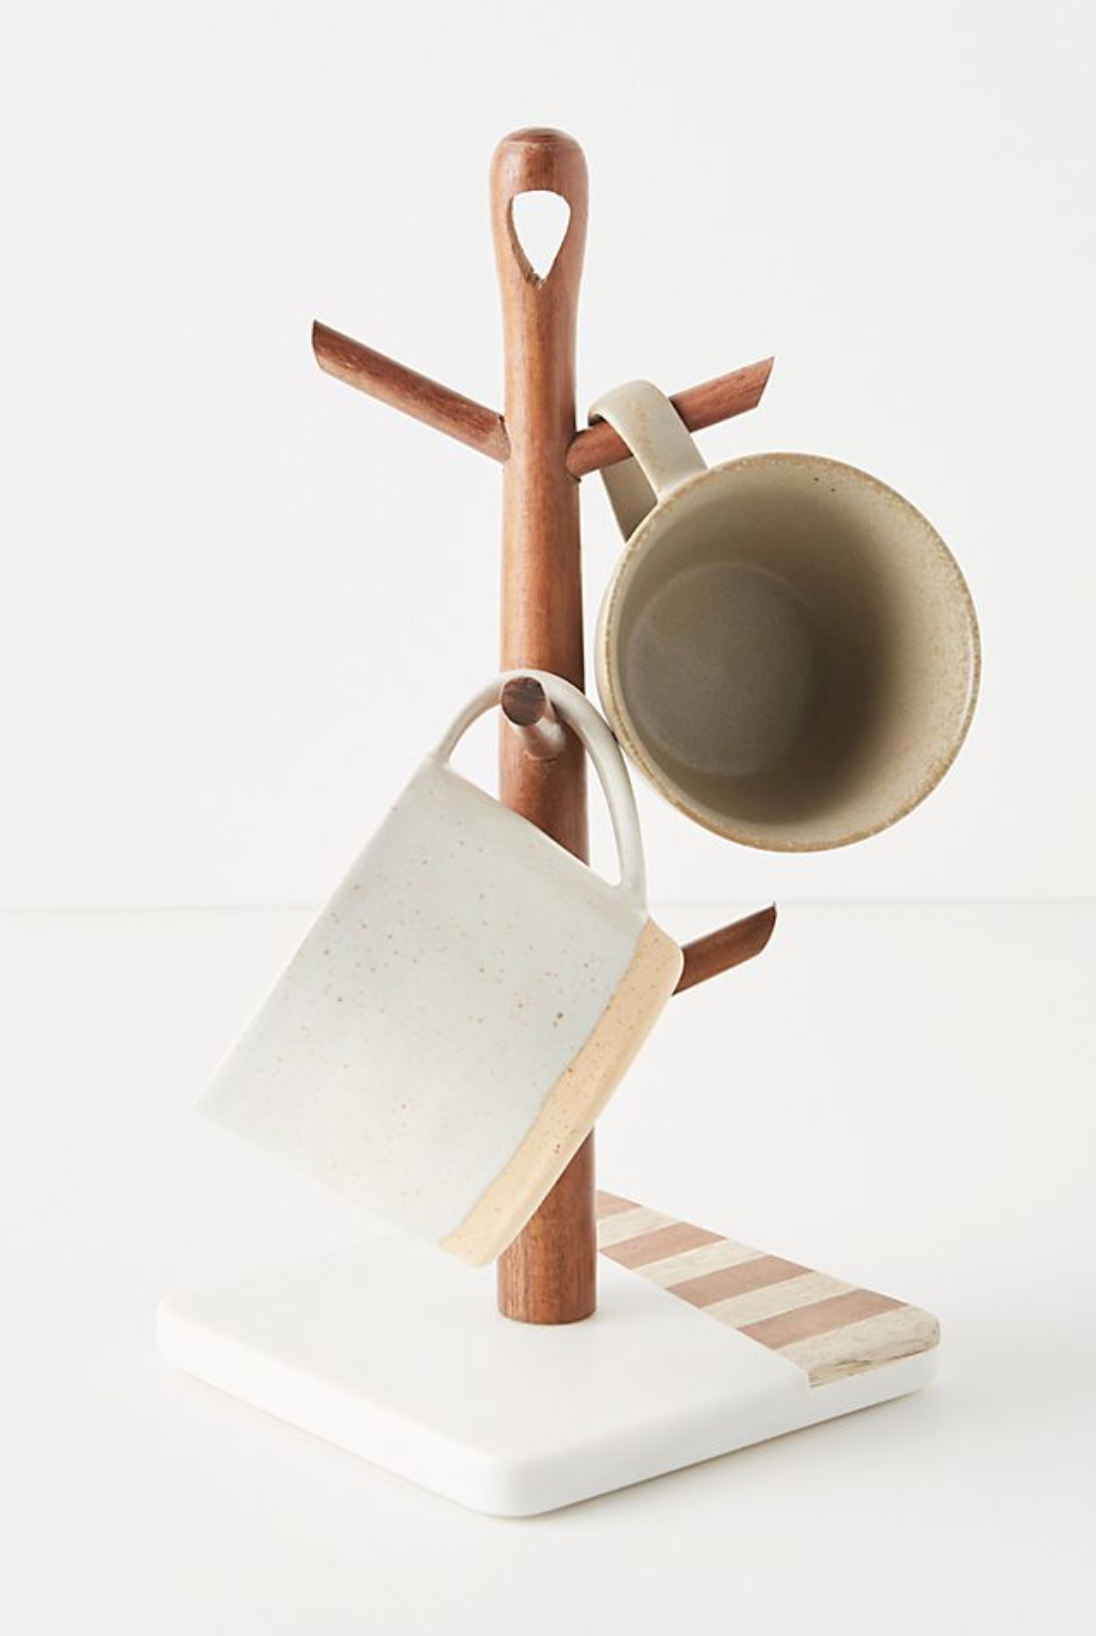 A white based mug tree with pink and ivory striped designs and a light wood stem with branches to hold mugs